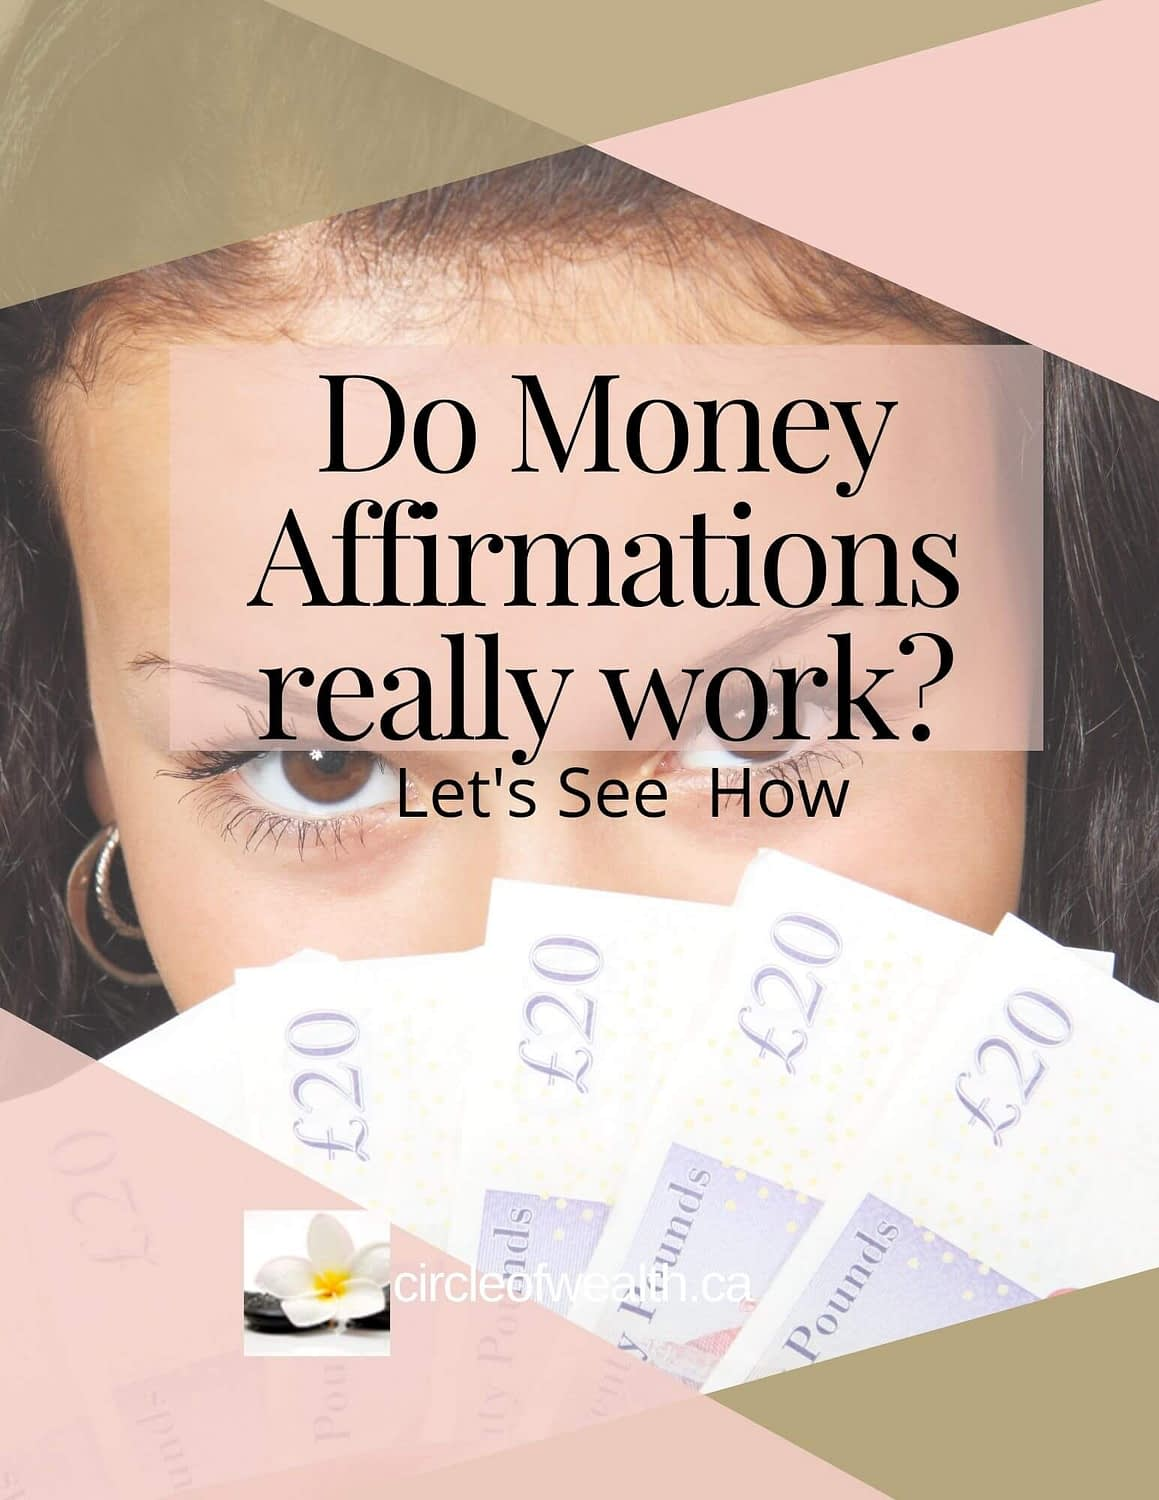 Do Money Affirmations really work?